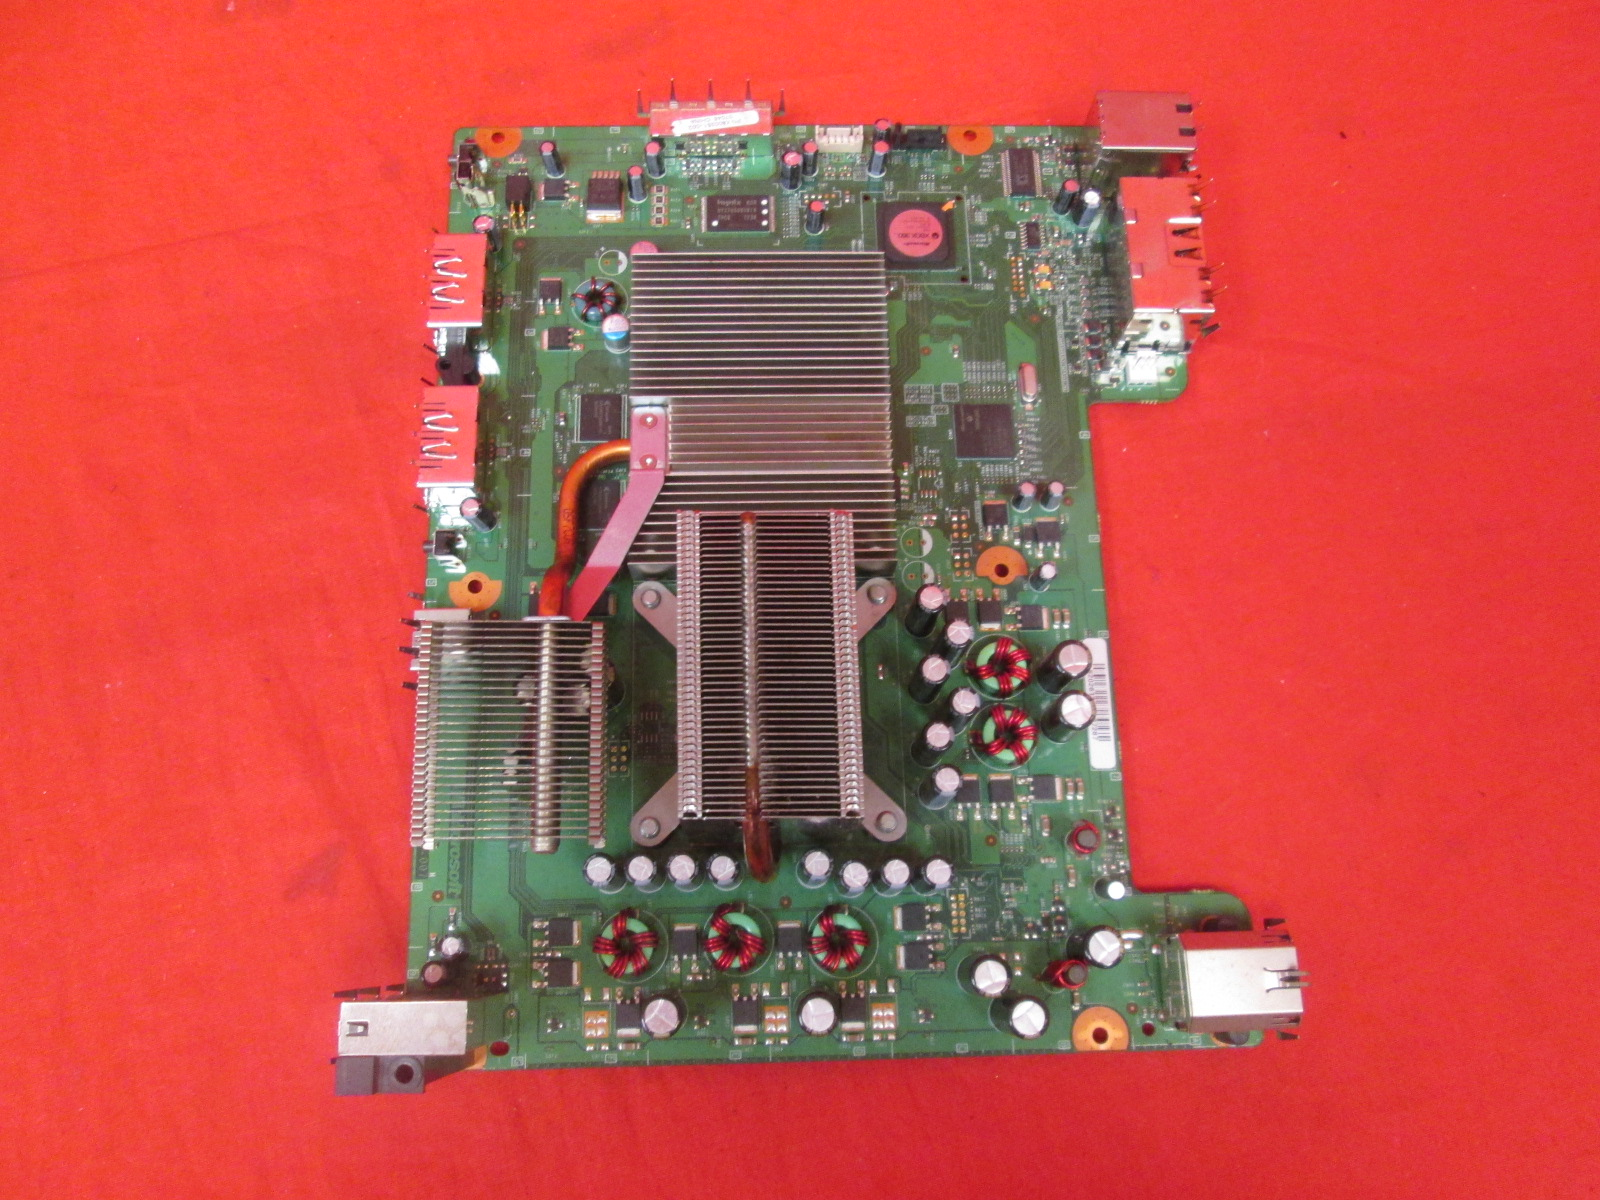 Broken Microsoft OEM Replacement Xbox 360 Motherboard X800351-002